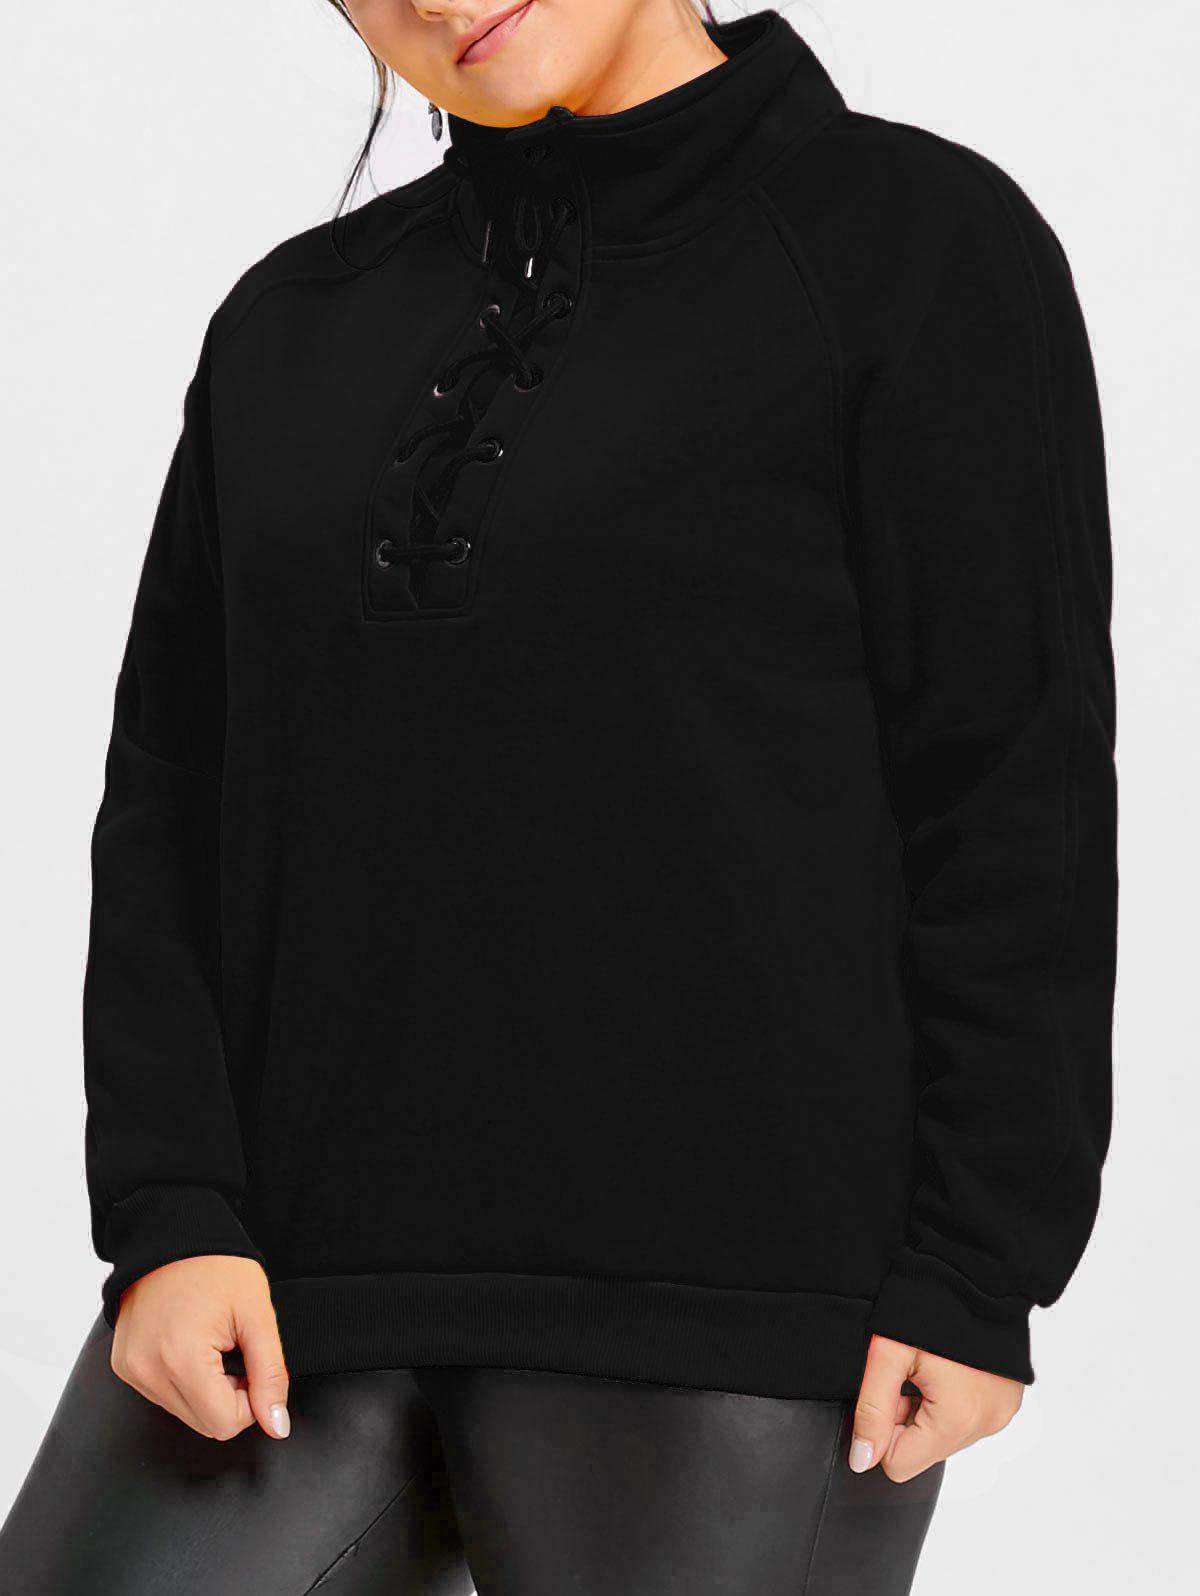 High Neck Plus Size Fleece Lined Lace Up Sweatshirt - BLACK 2XL